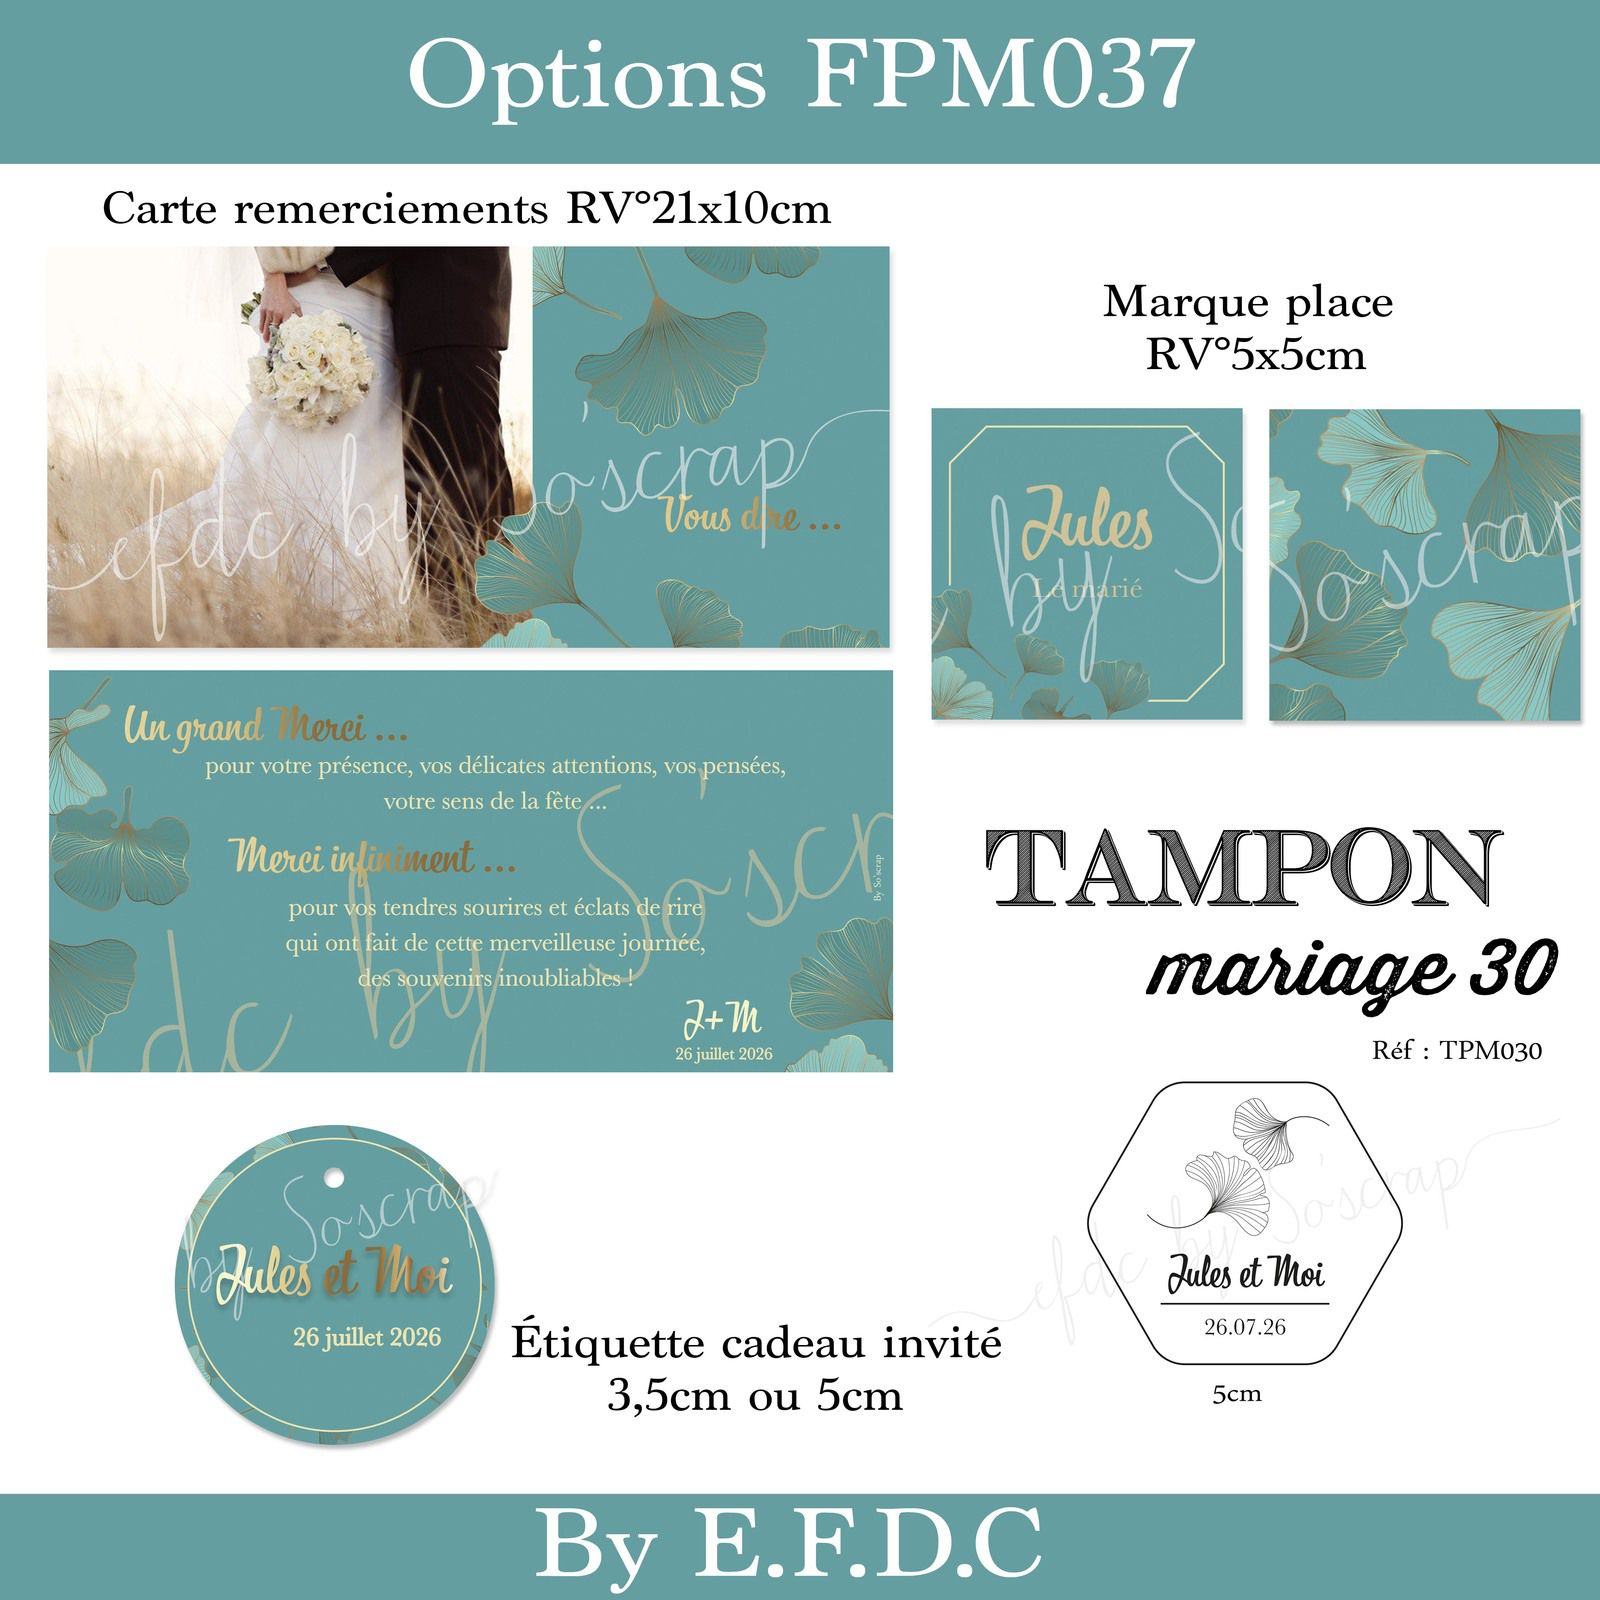 options STD (save the date) menu assorties au faire part de mariage thème rétro ginkgo